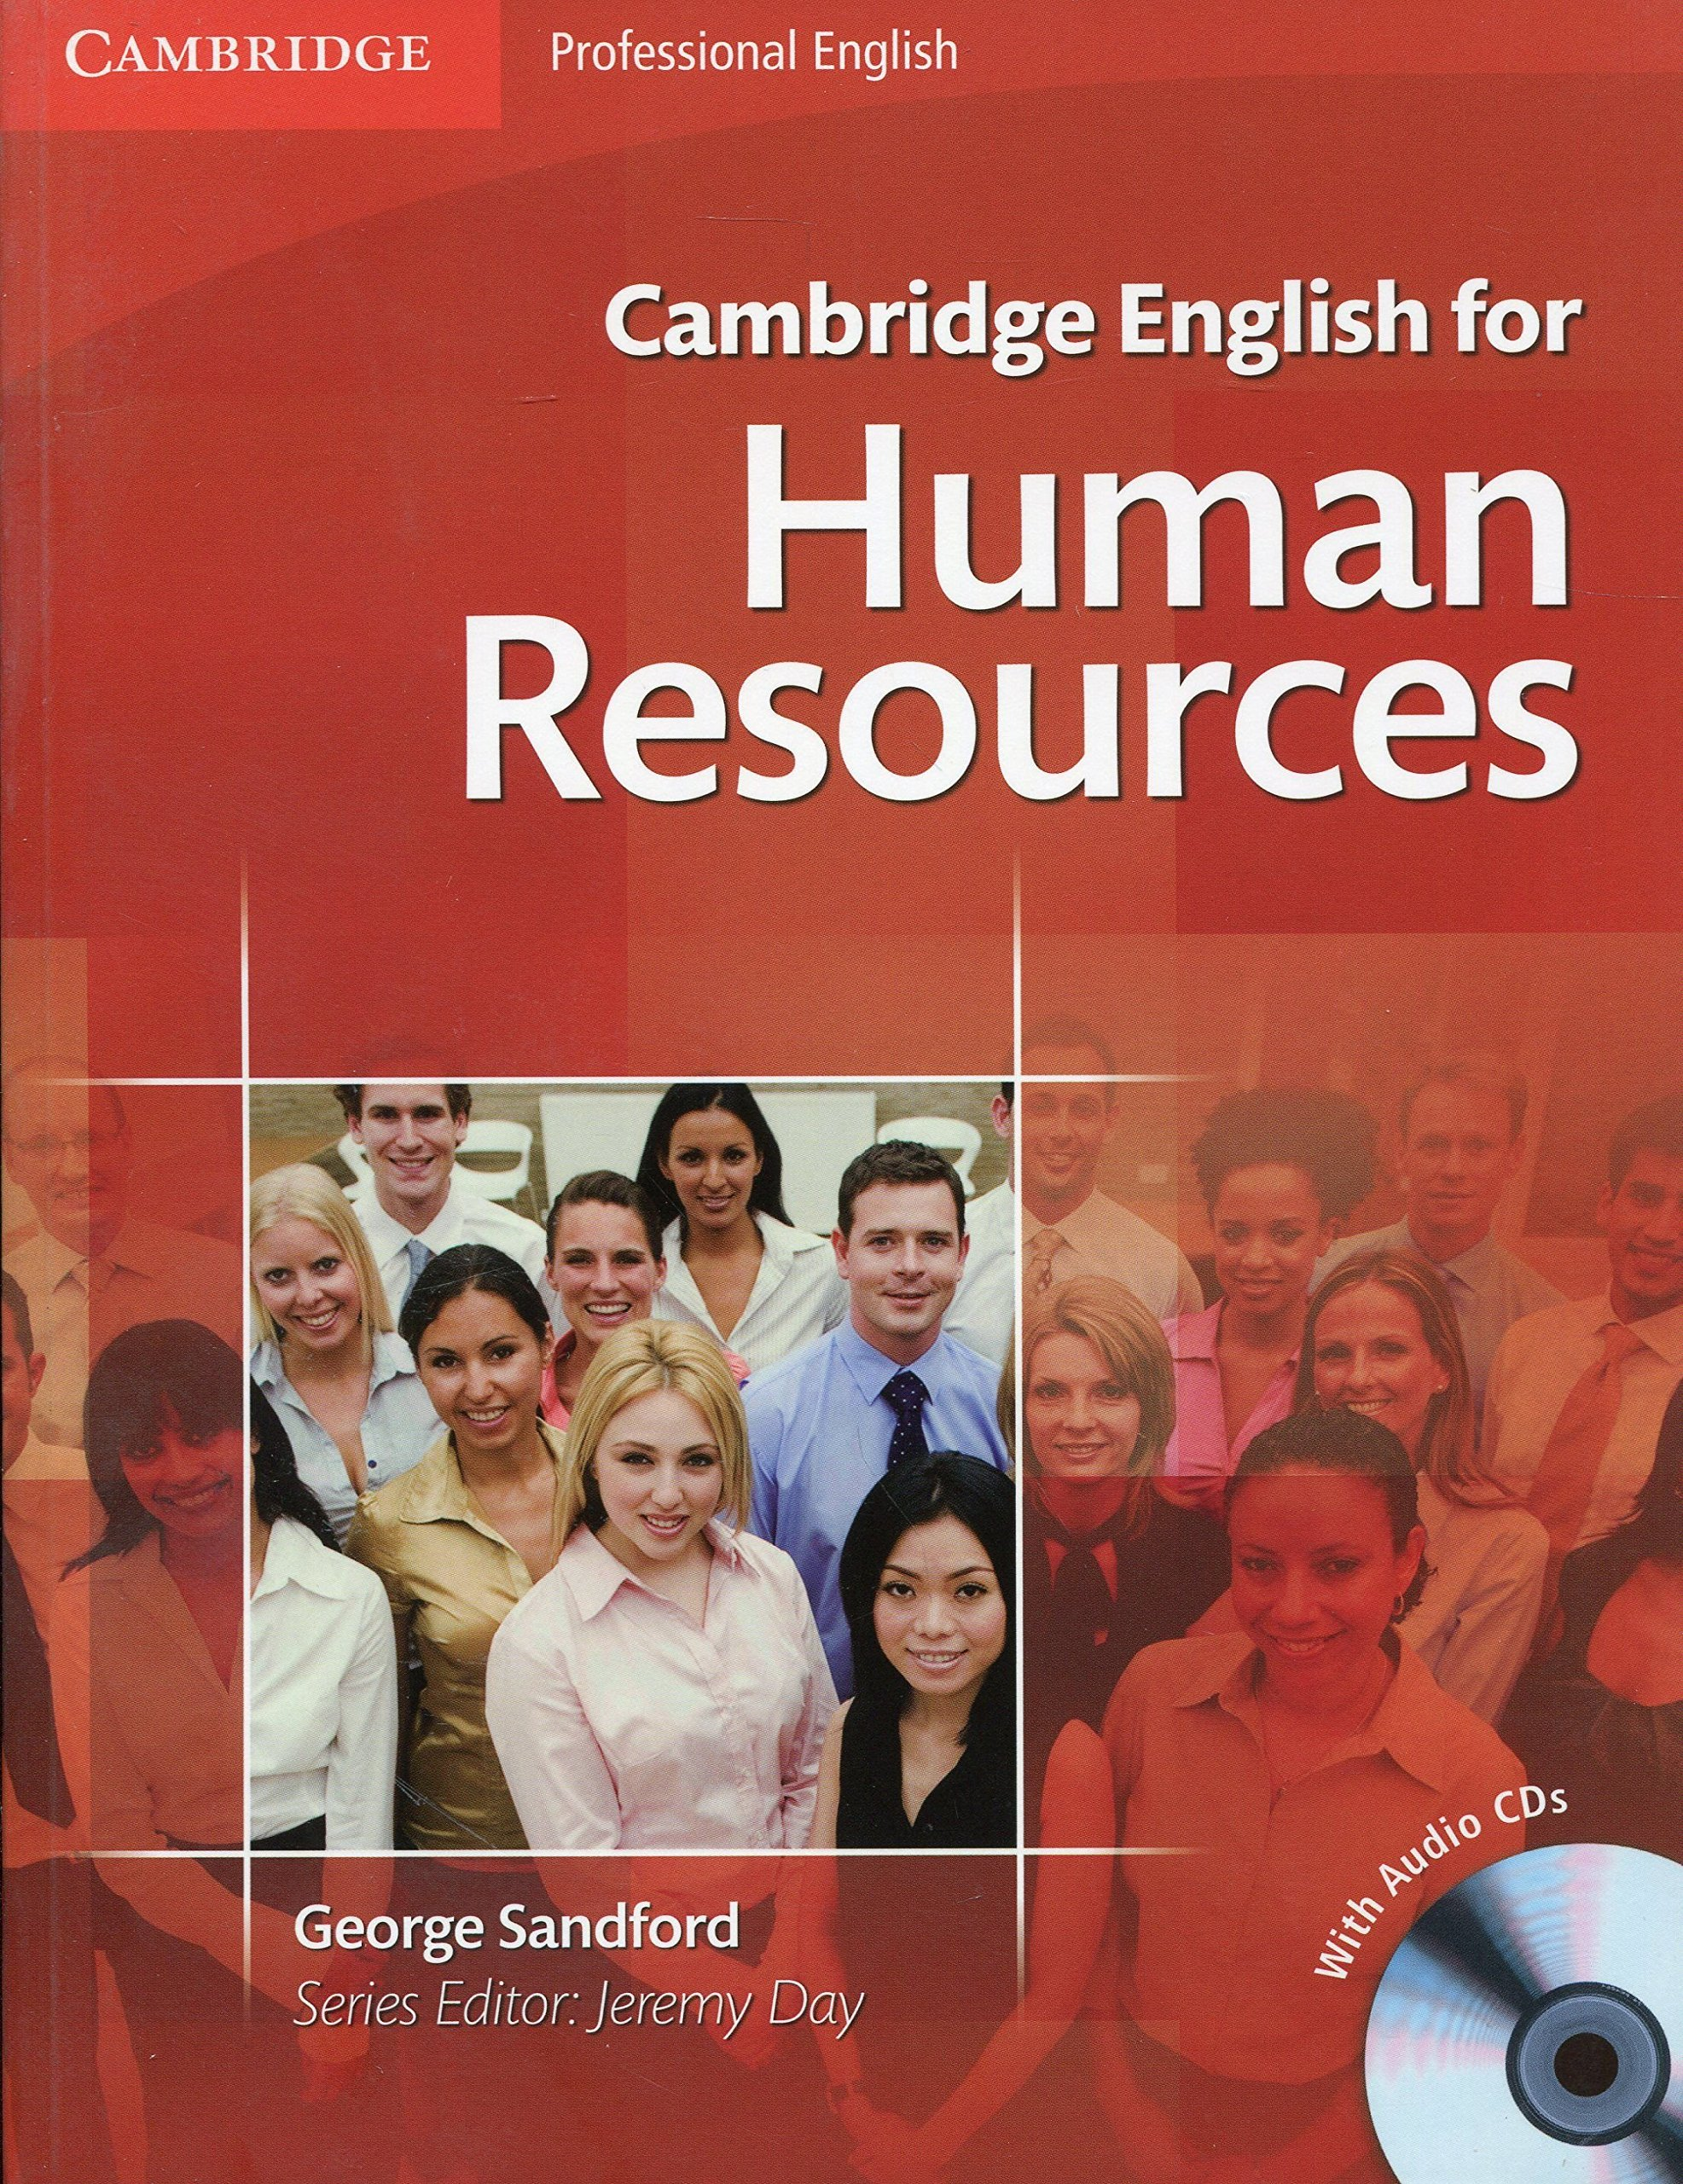 Cambridge English for Human Resources Student's Book with Audio CDs (2) by imusti